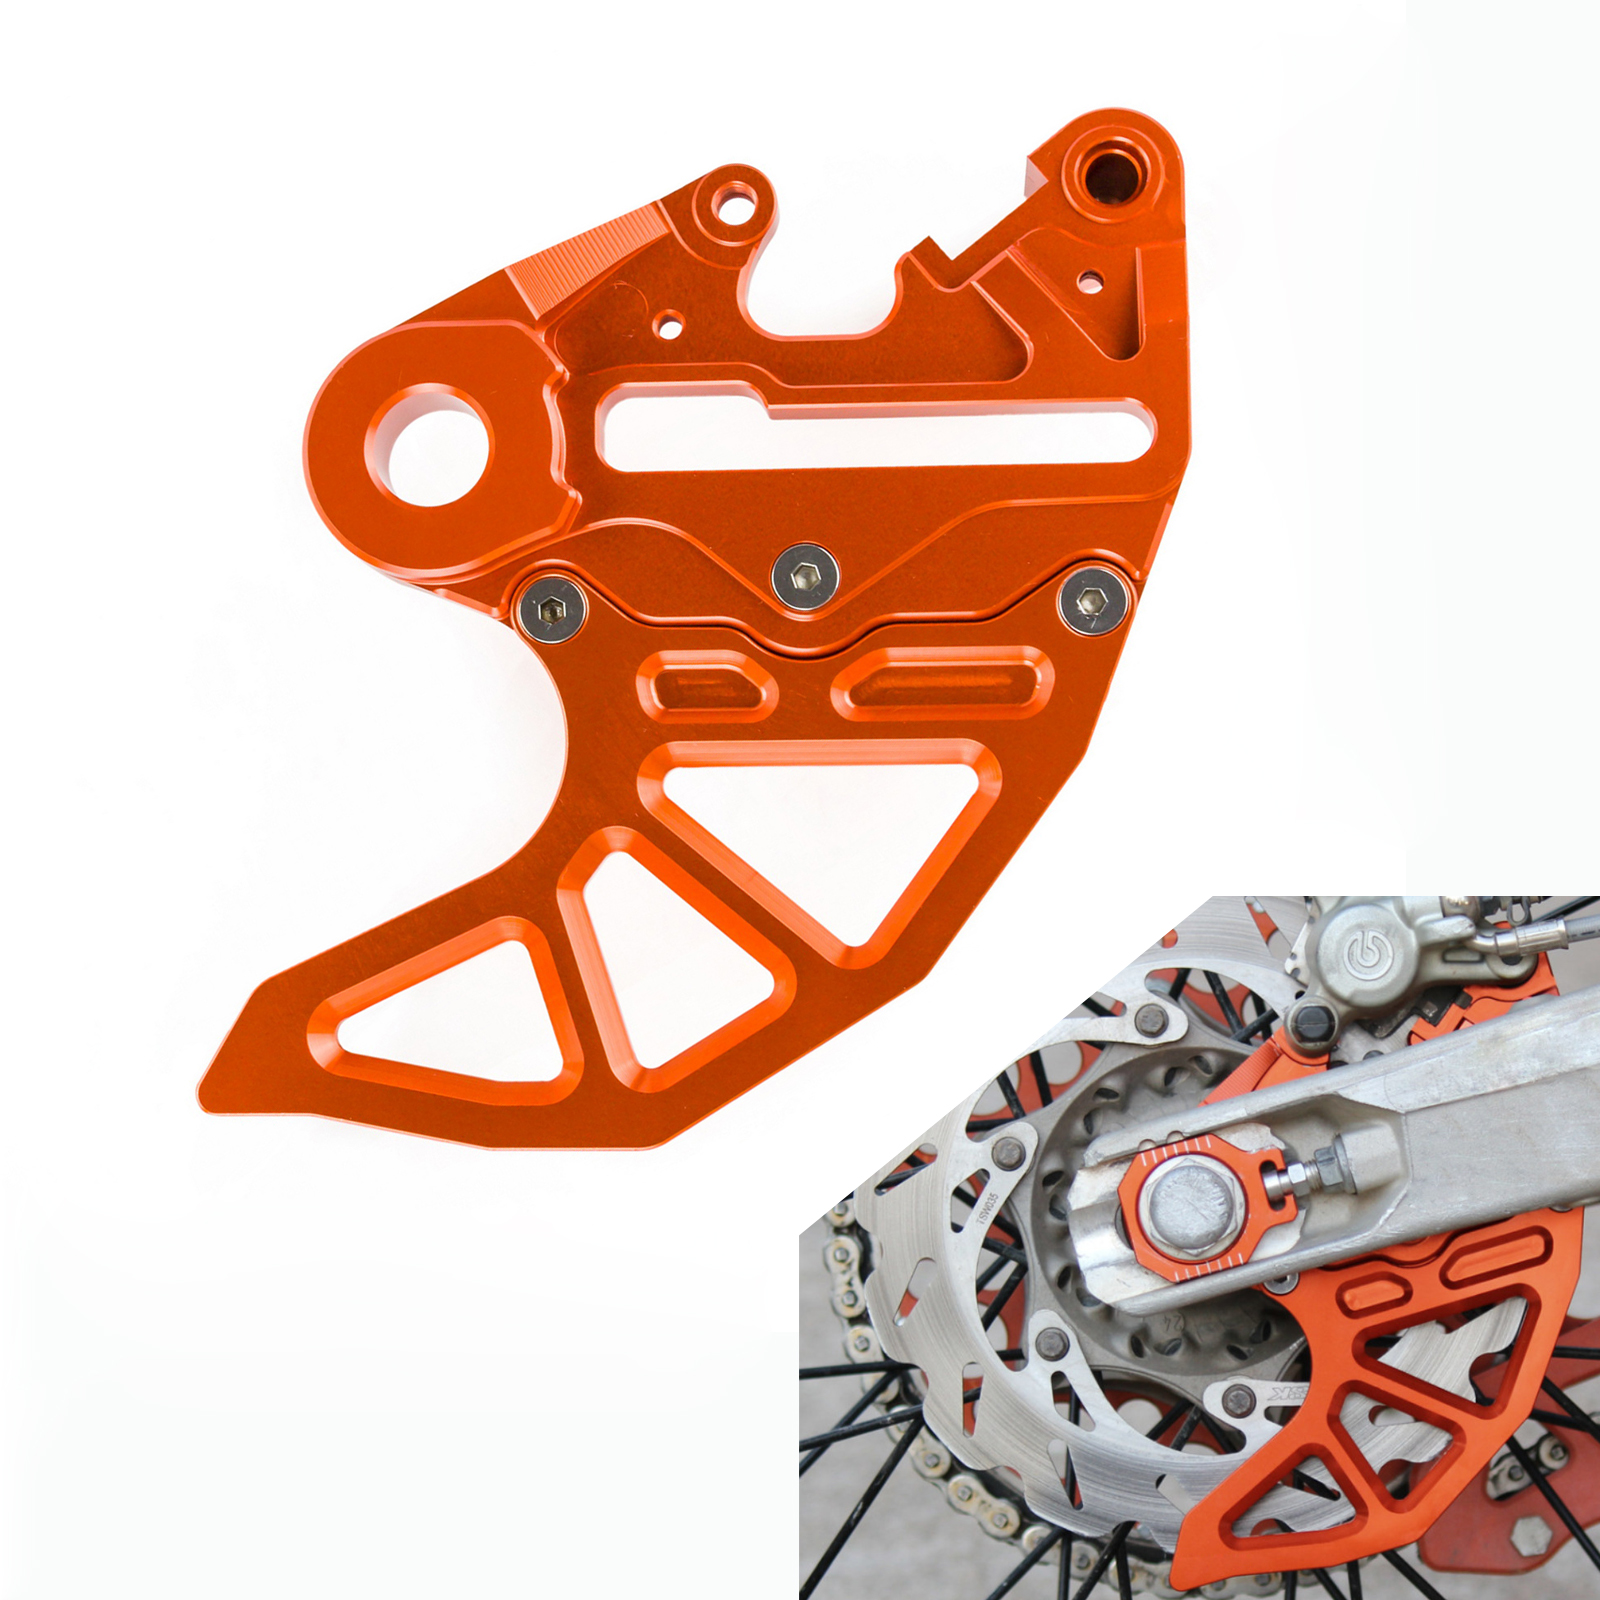 Rear Brake Disc Guard Protector For KTM Dungey Replica 450 SXF 2012-2014 125 250 350 450 525 530 EXC SXF XCF EXC-F XCW 2004-2012Rear Brake Disc Guard Protector For KTM Dungey Replica 450 SXF 2012-2014 125 250 350 450 525 530 EXC SXF XCF EXC-F XCW 2004-2012